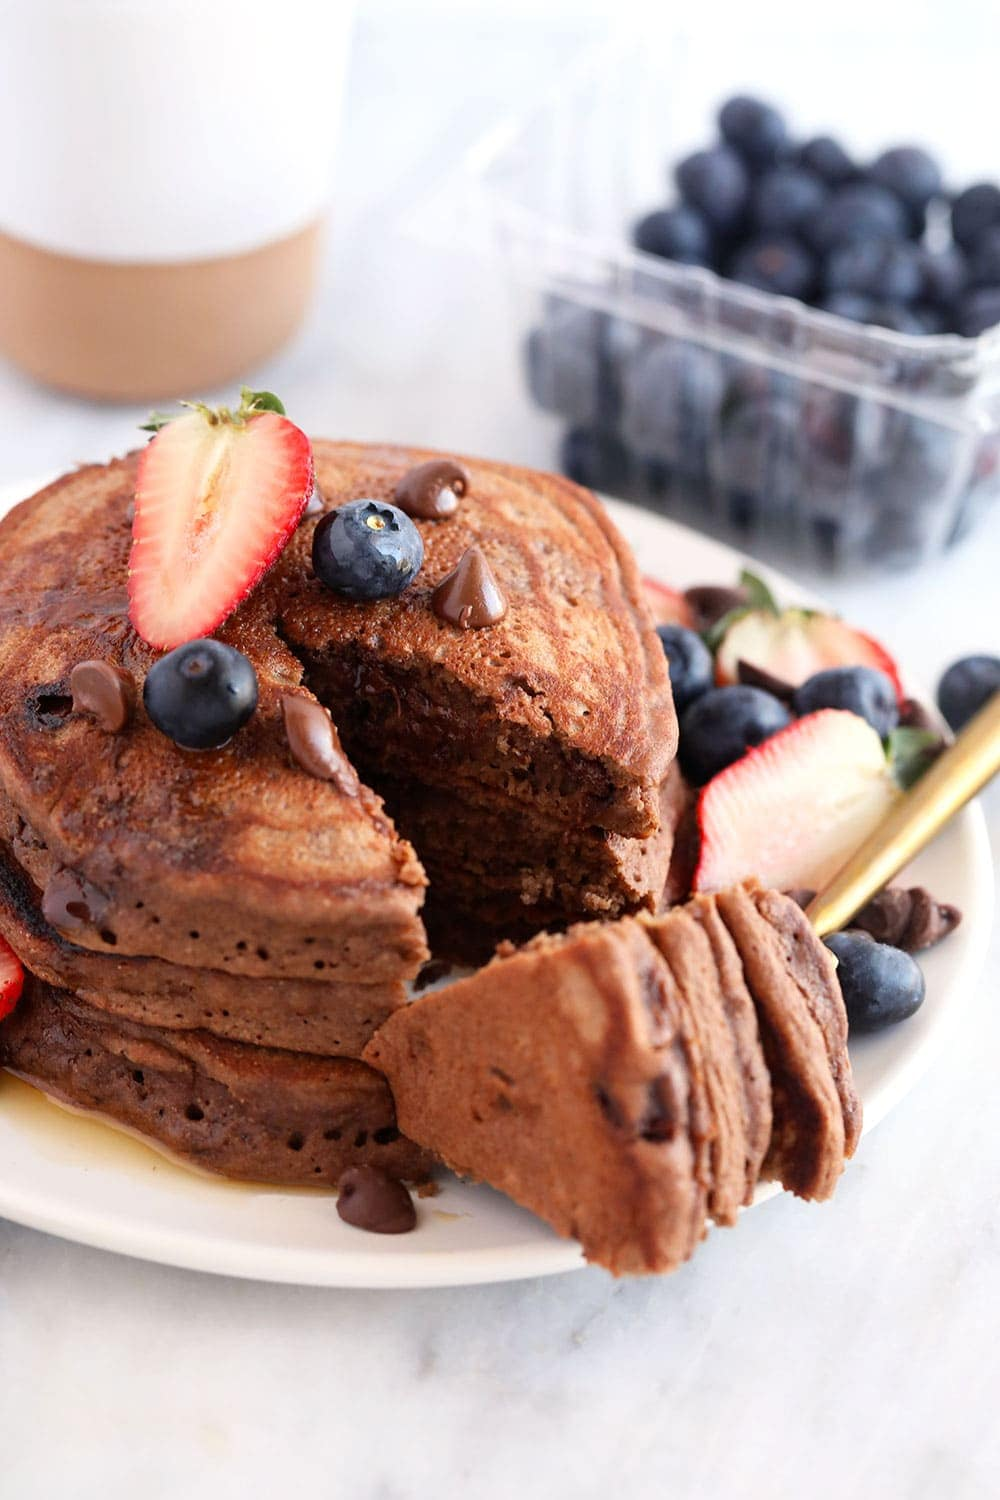 3 chocolate chocolate chip pancakes on a plate